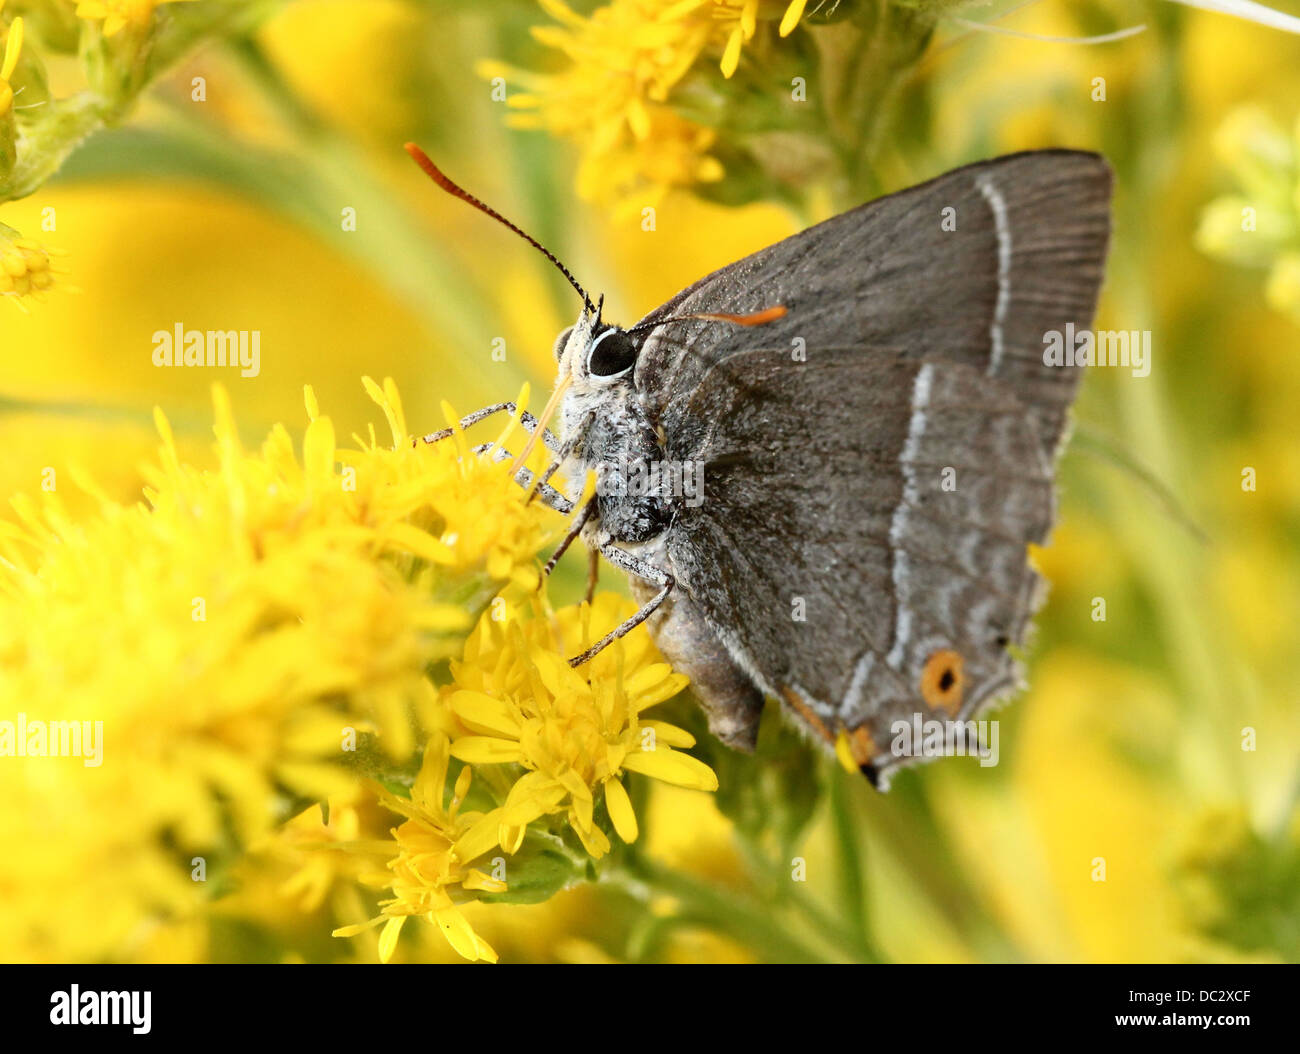 Purple Hairstreak Butterfly (Favonius quercus) foraging and posing on Solidago (Goldenrod) flowers wings closed - Stock Image